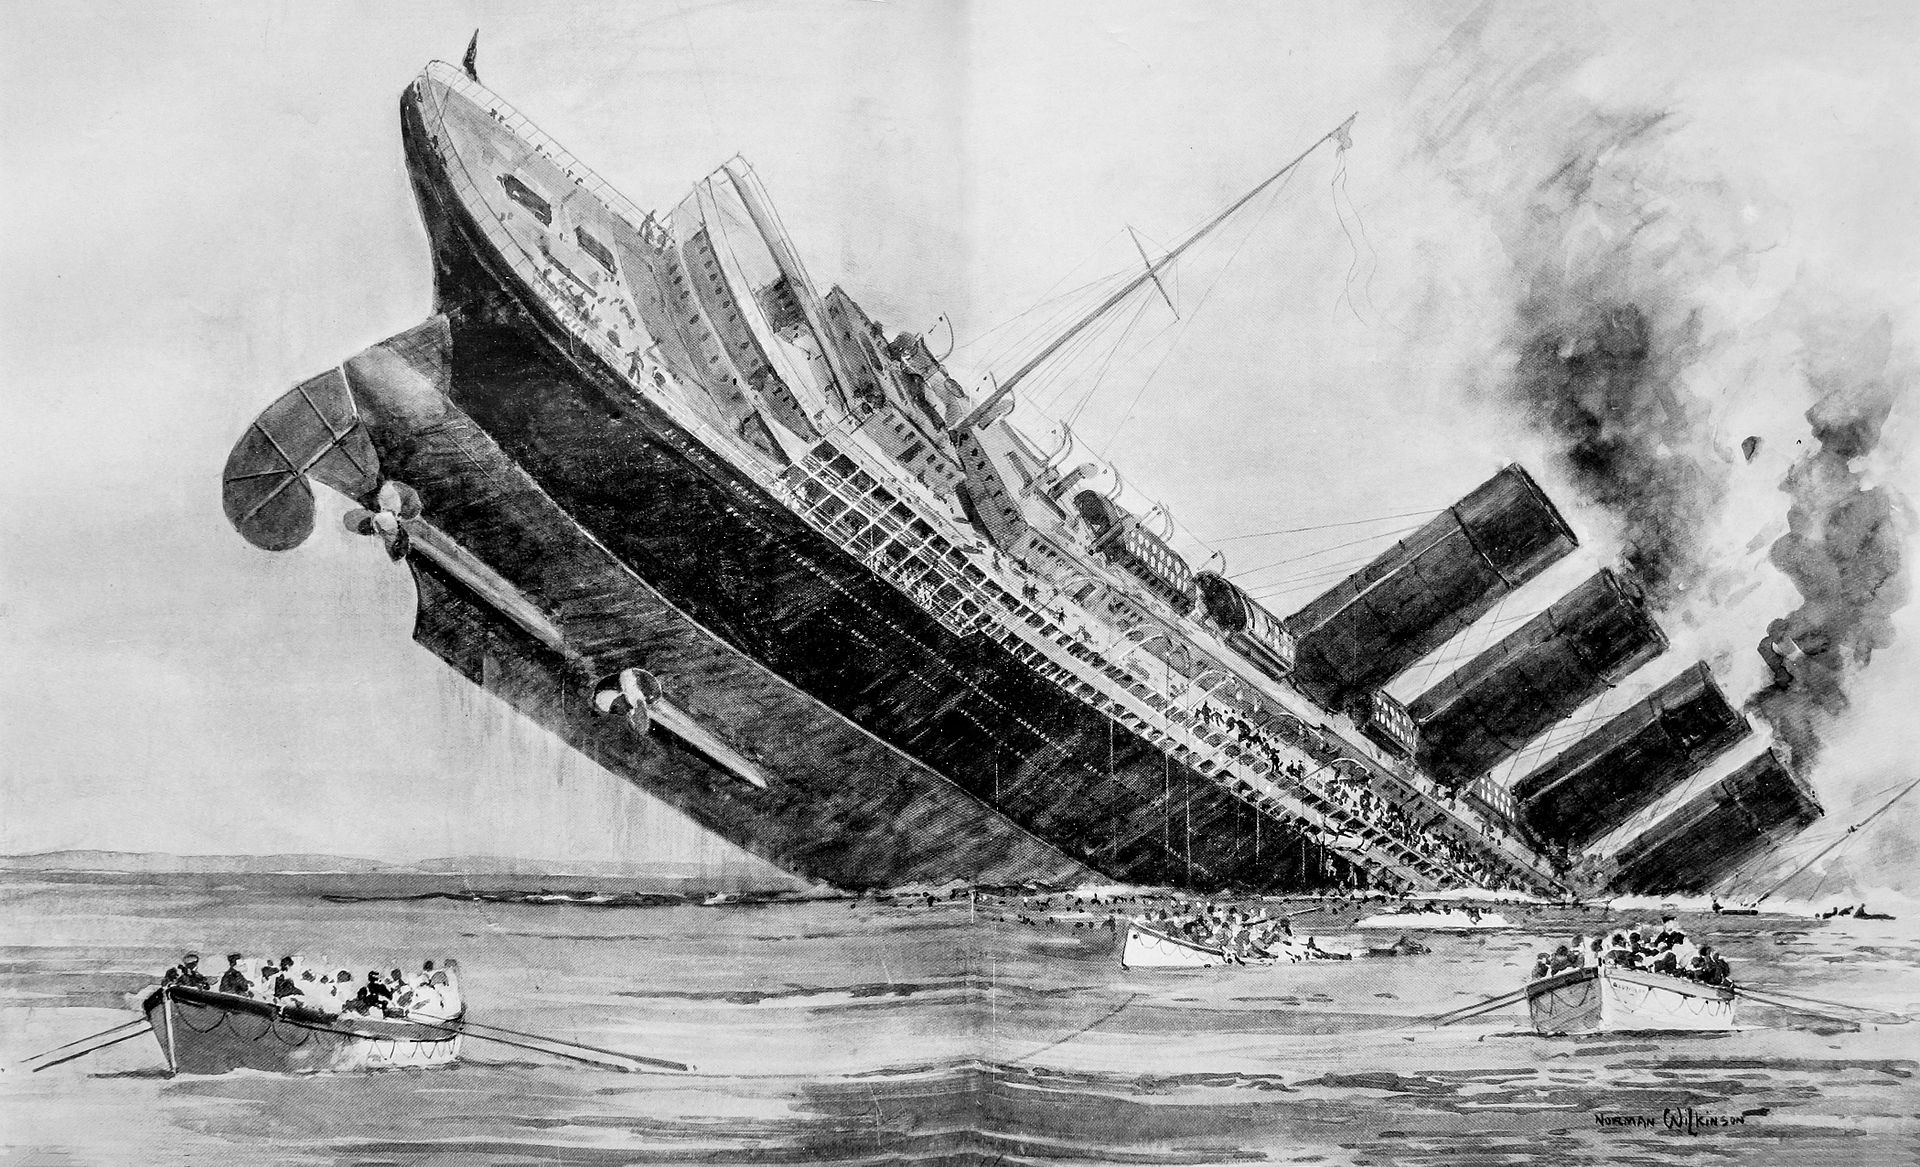 El hundimiento del Lusitania, London Illustrated News. Fuente: Wikimedia.